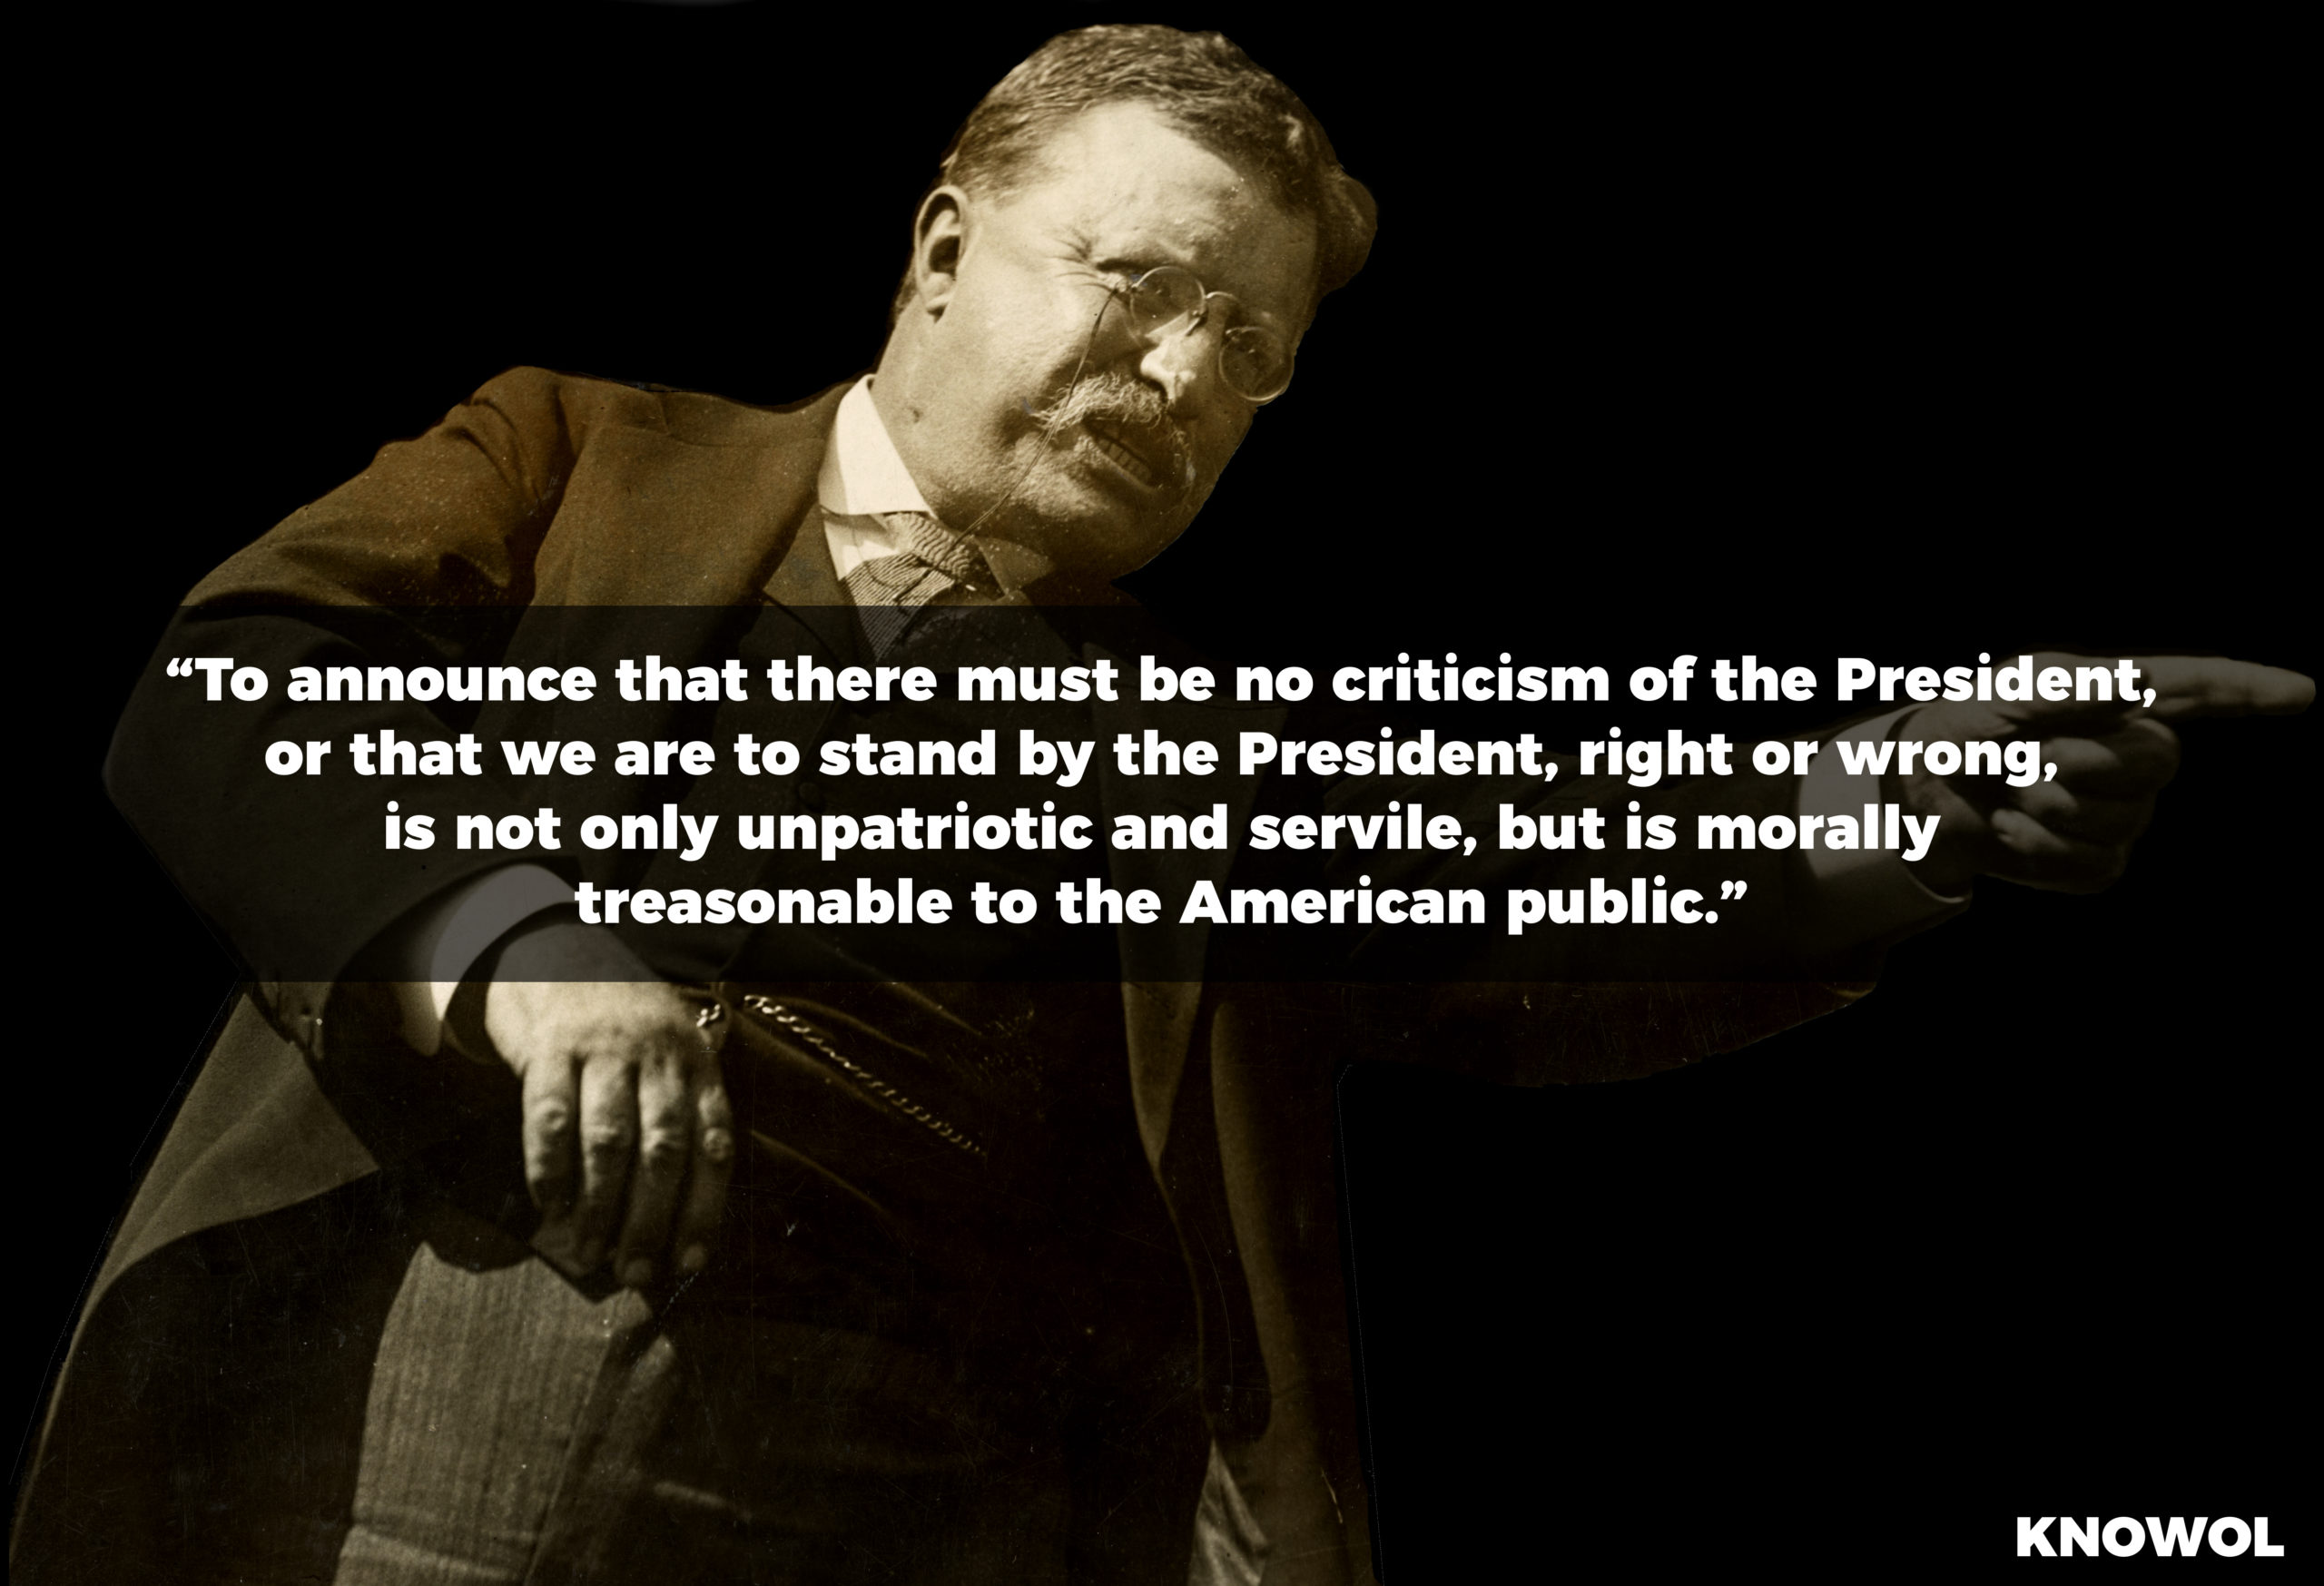 Teddy Roosevelt Quotes Theodore Roosevelt Discusses Criticism Of The President  Knowol